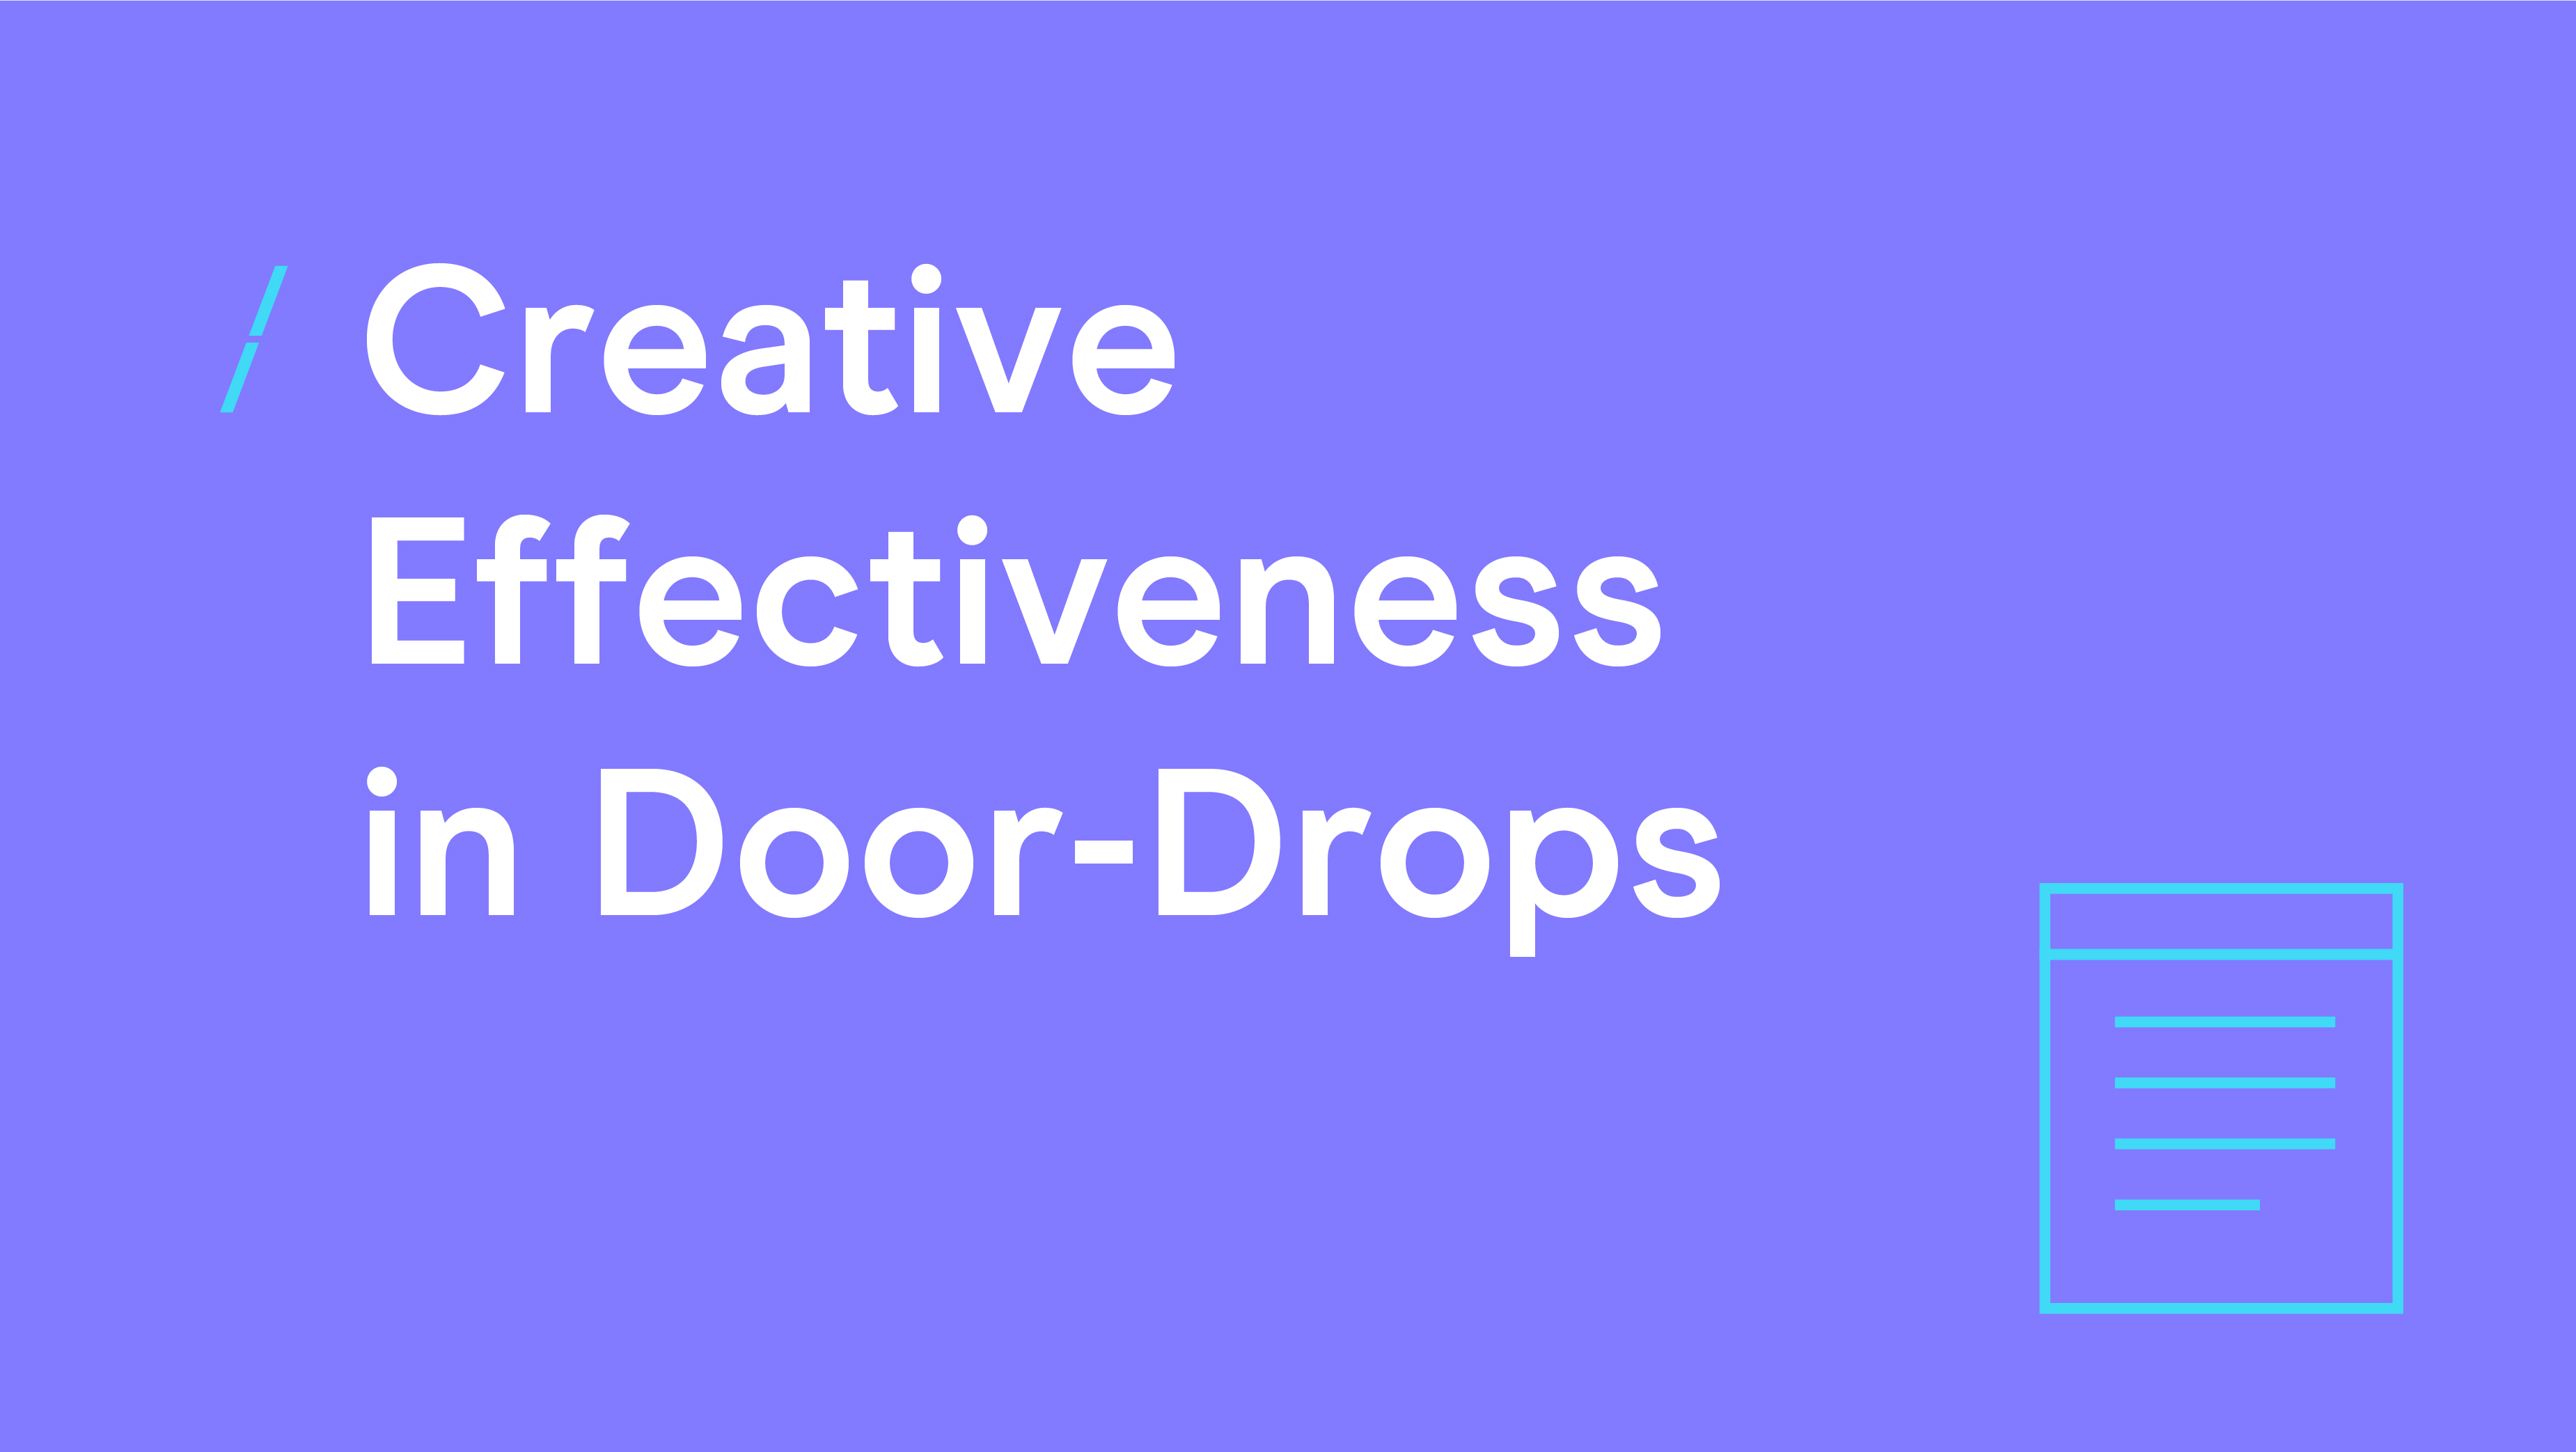 creative-effectiveness-in-door-drops_events-copy-4.jpg